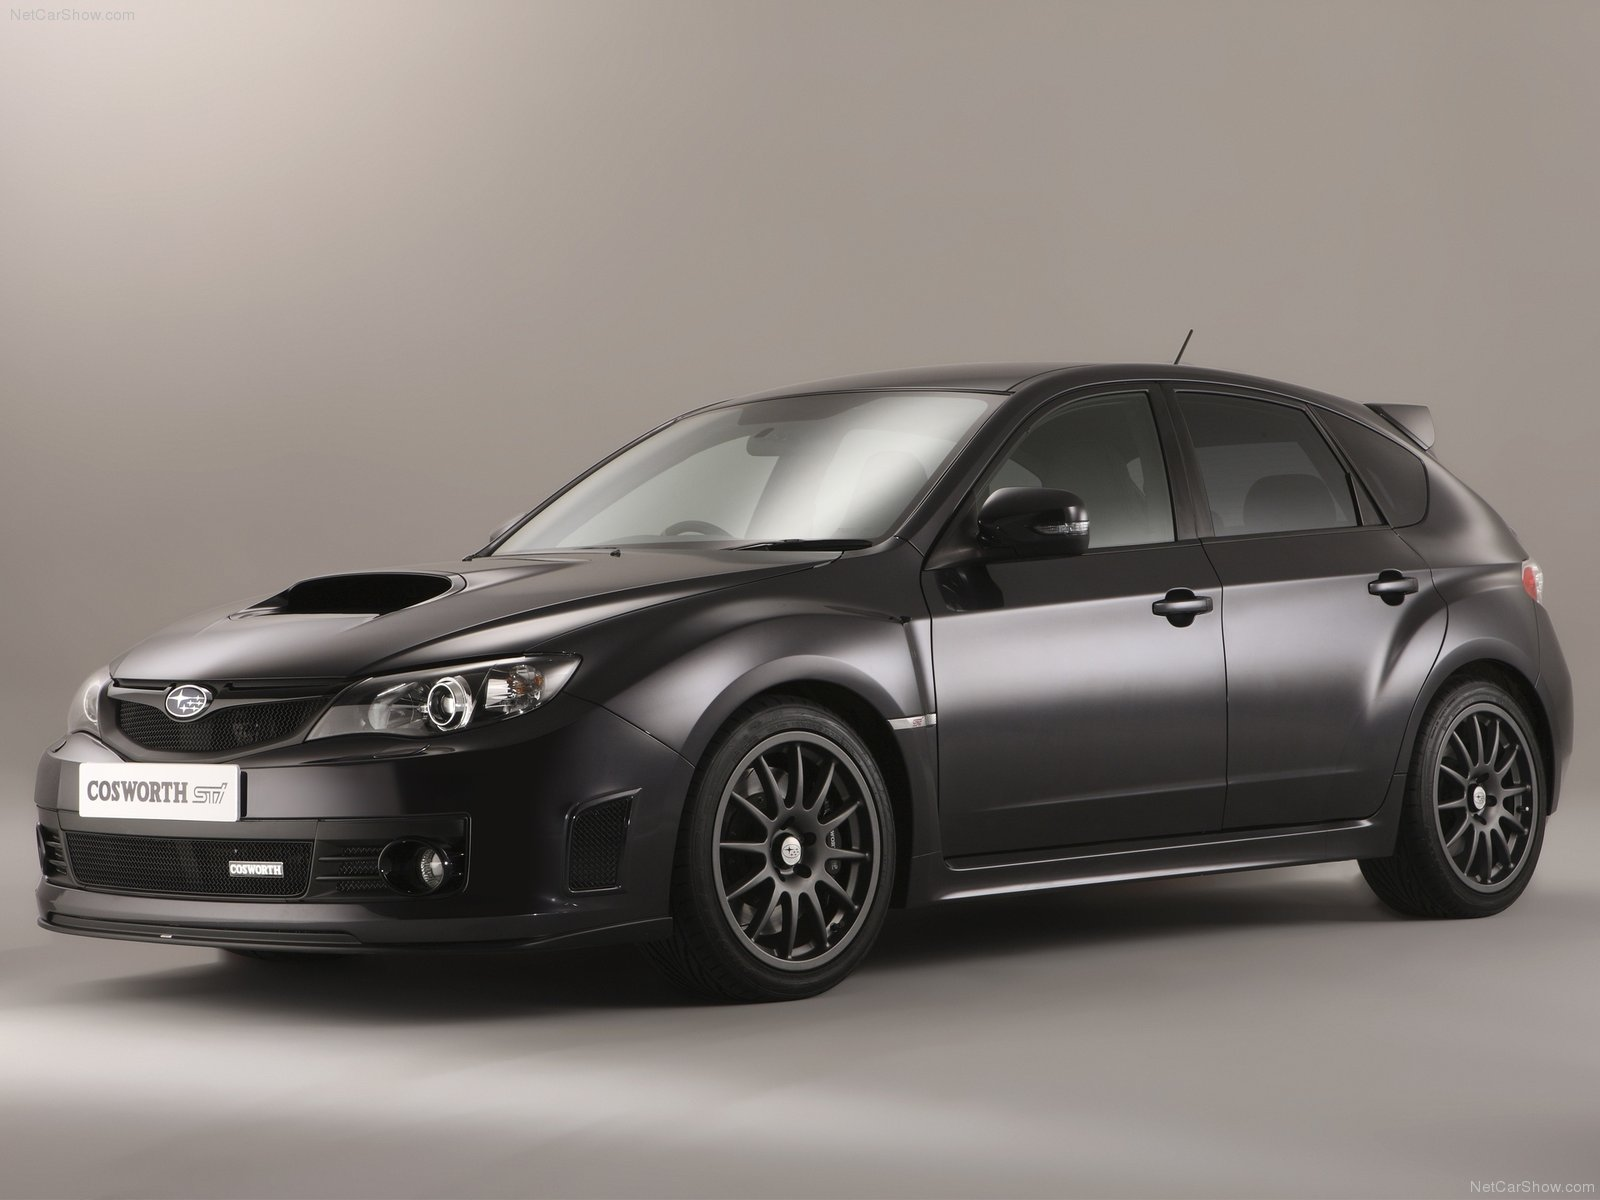 subaru-impreza_sti_cosworth_cs400_2011_1600x1200_wallpaper_01